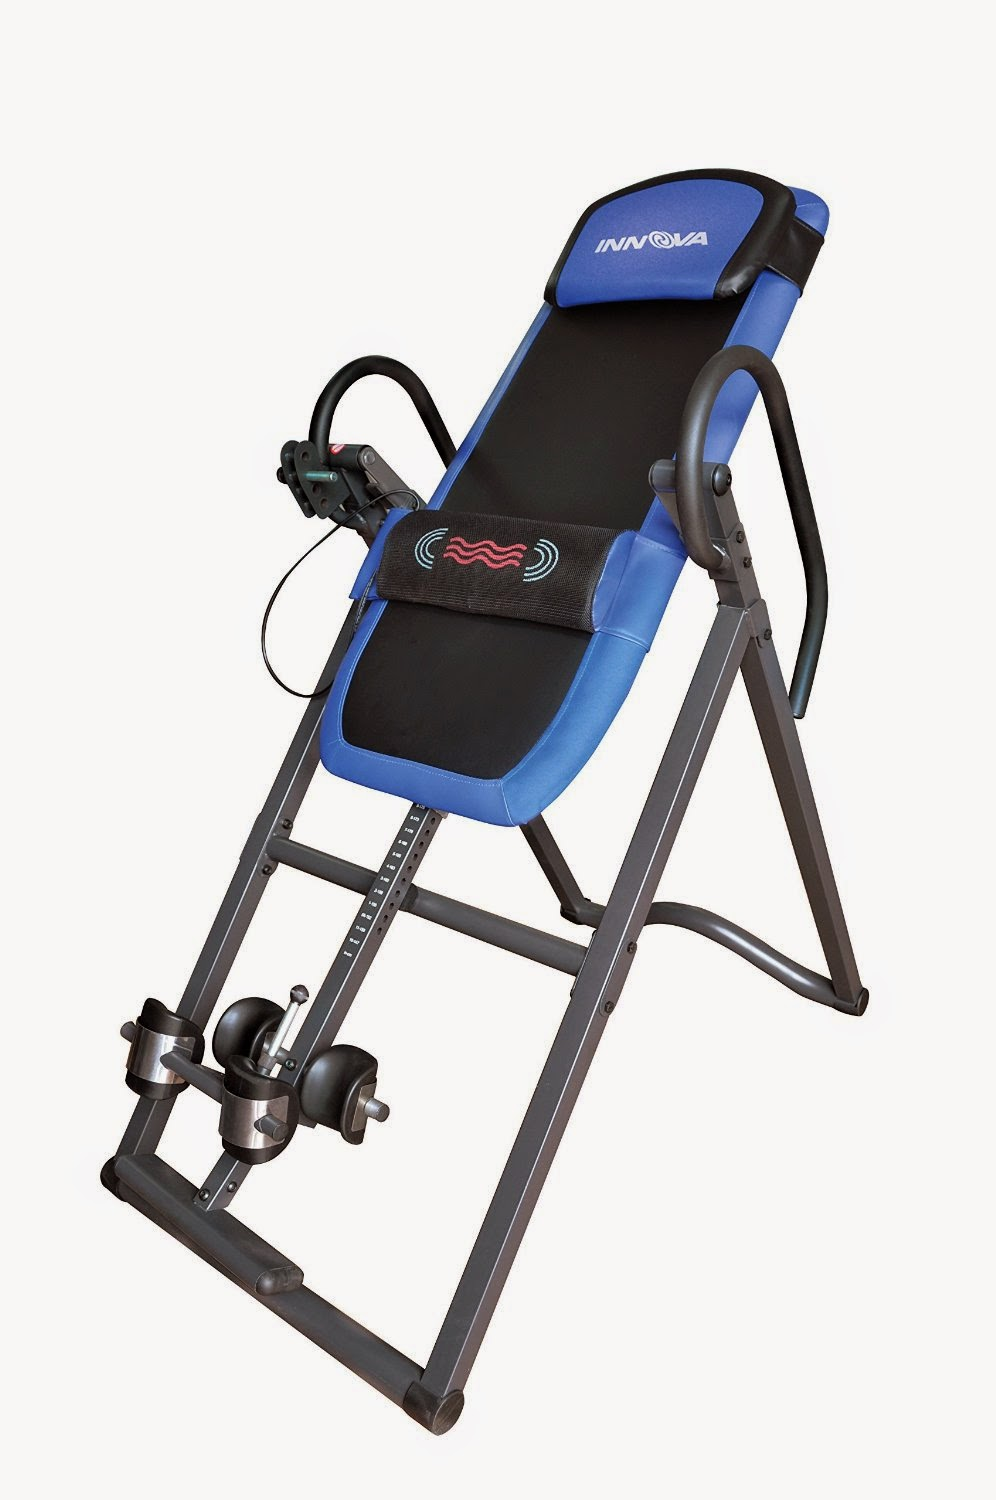 Innova ITM4800 Advanced Heat and Massage Therapeutic Inversion Therapy Table for back pain relief, reviewed